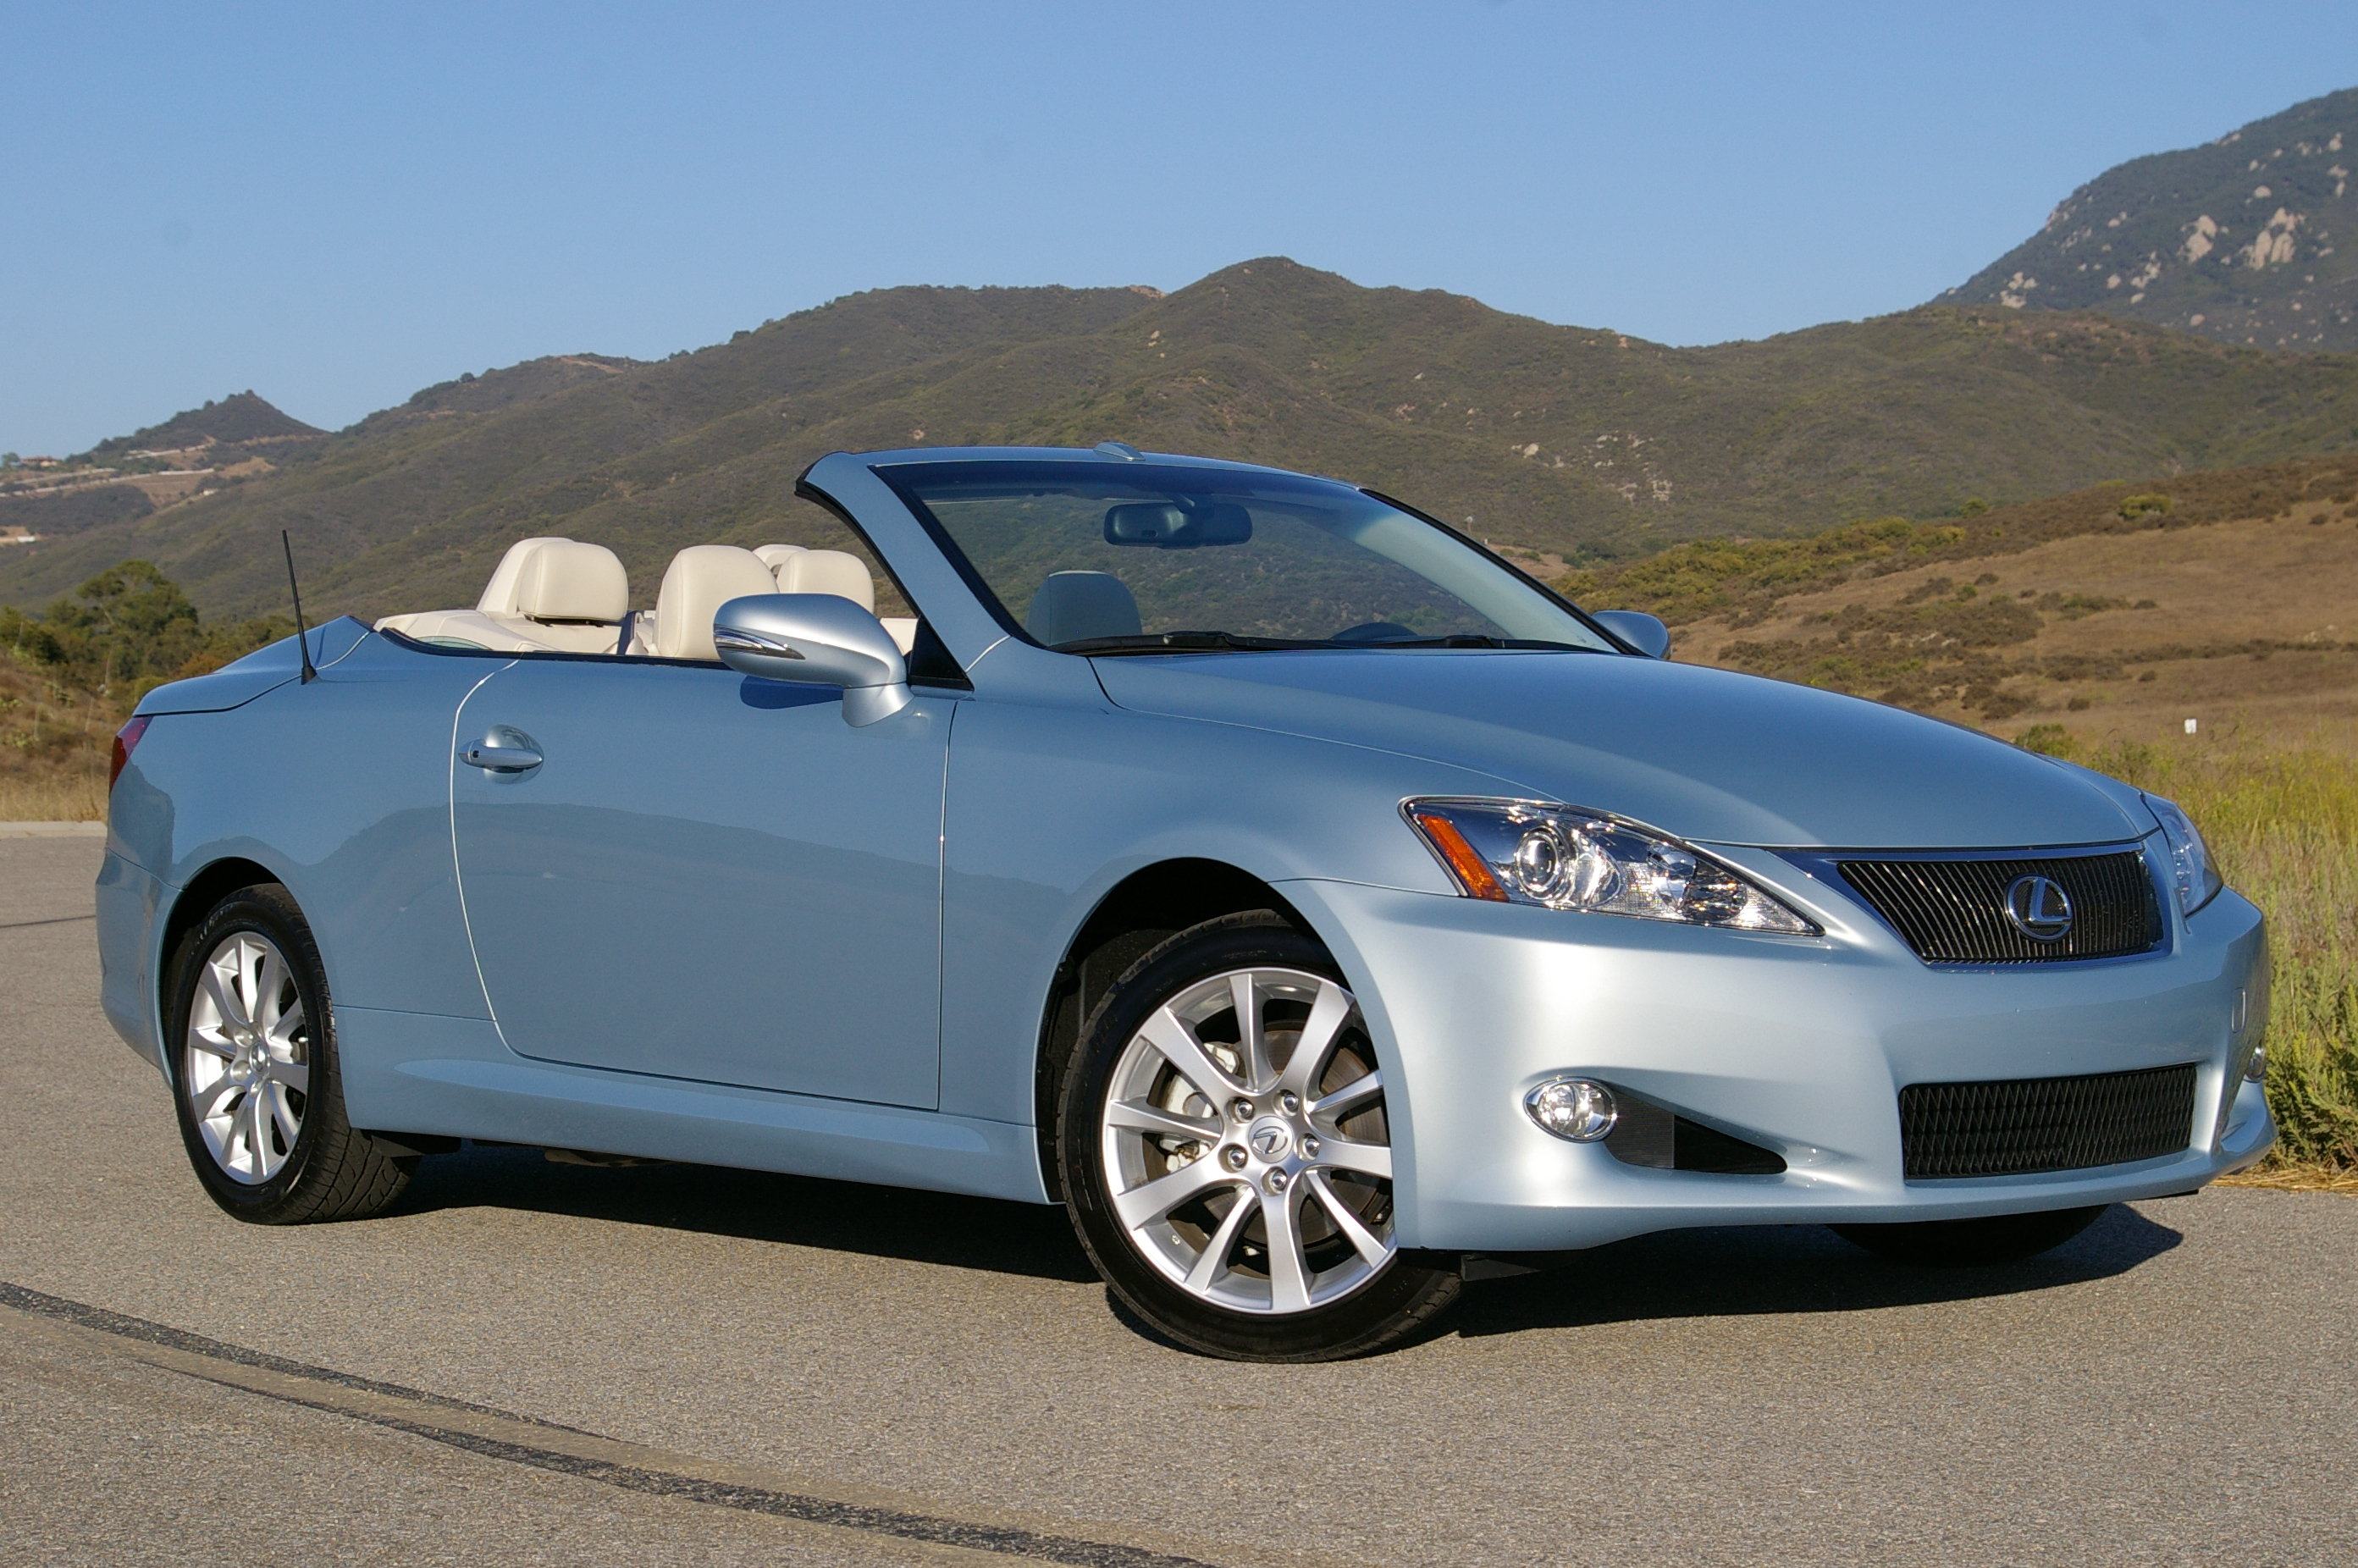 2010 Lexus Is 250 C #1